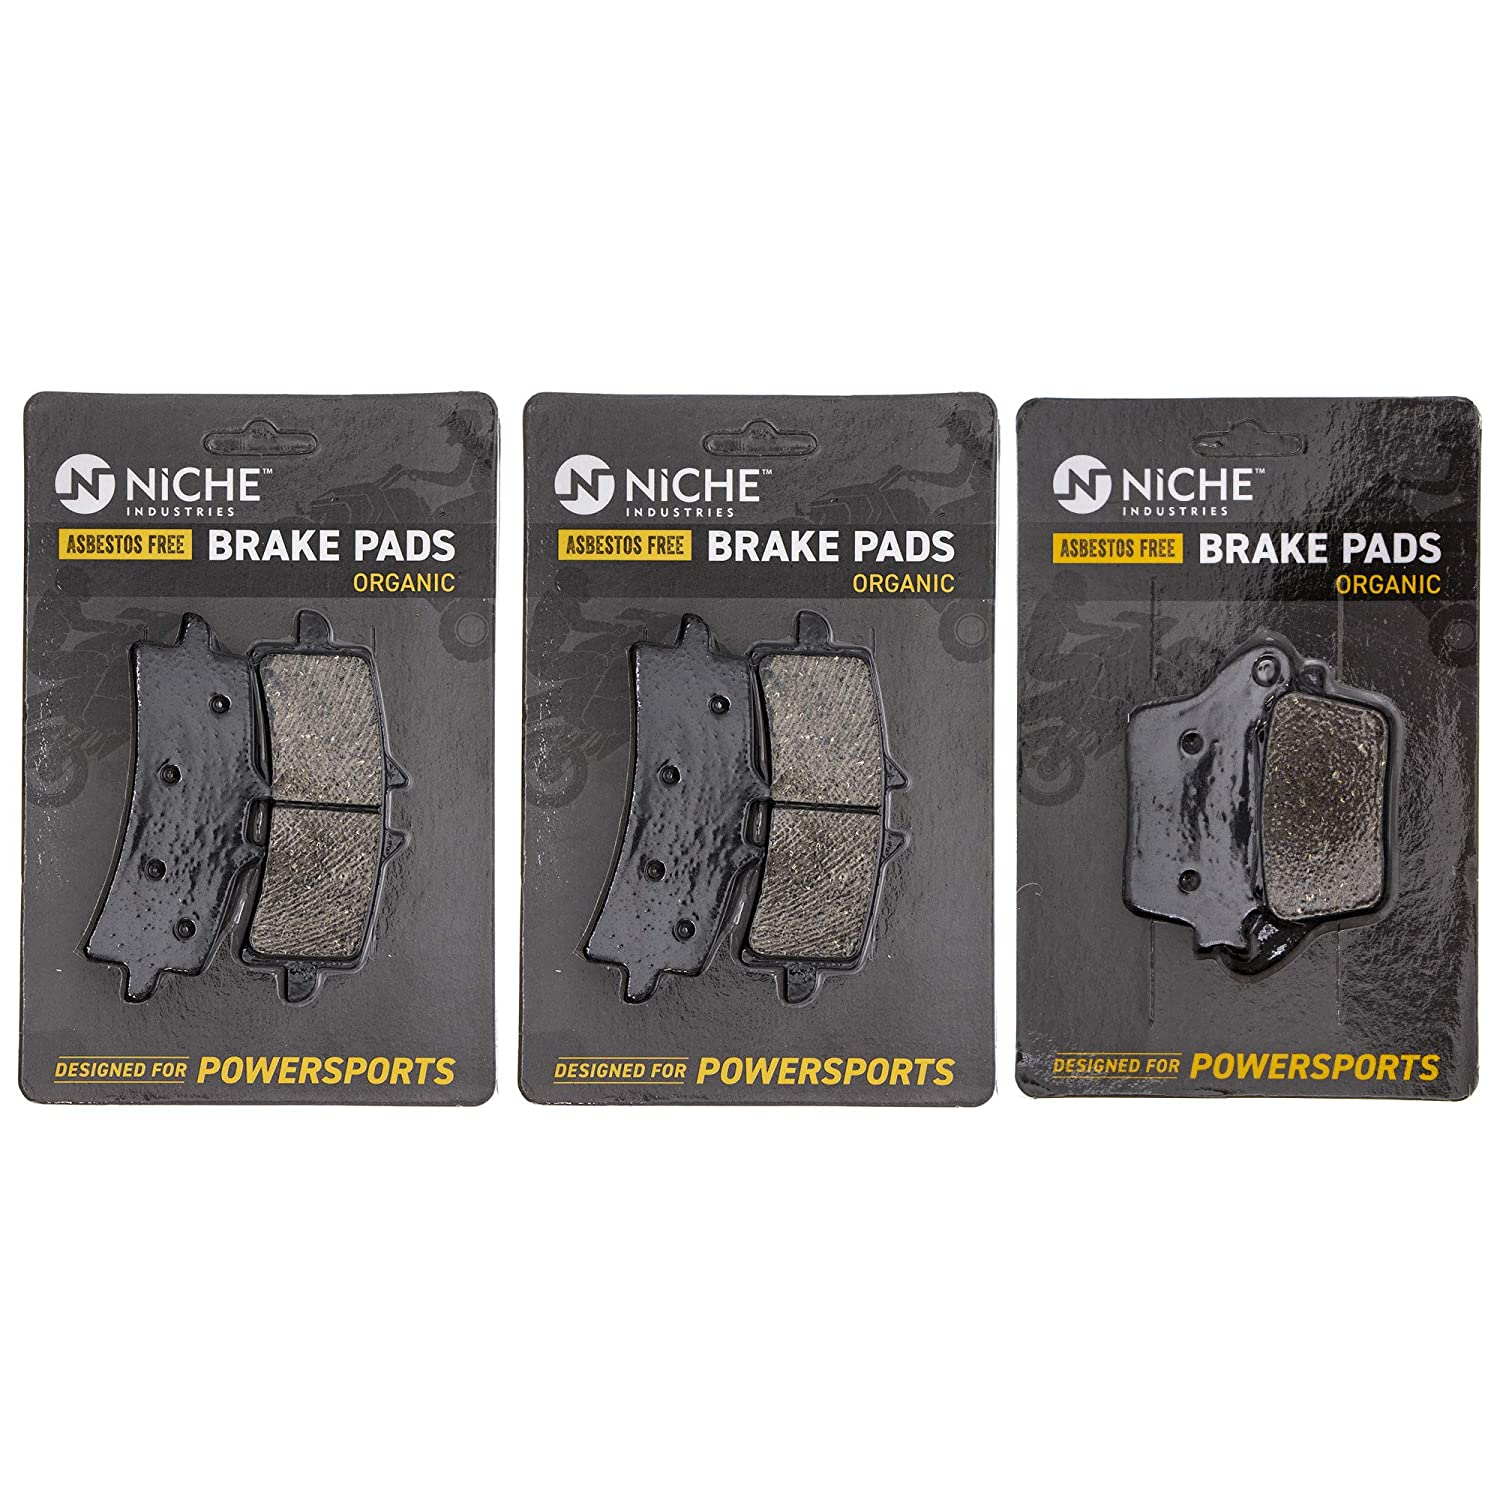 Amazon.com: NICHE Brake Pad Set For Suzuki GSXR600 GSXR750 ...